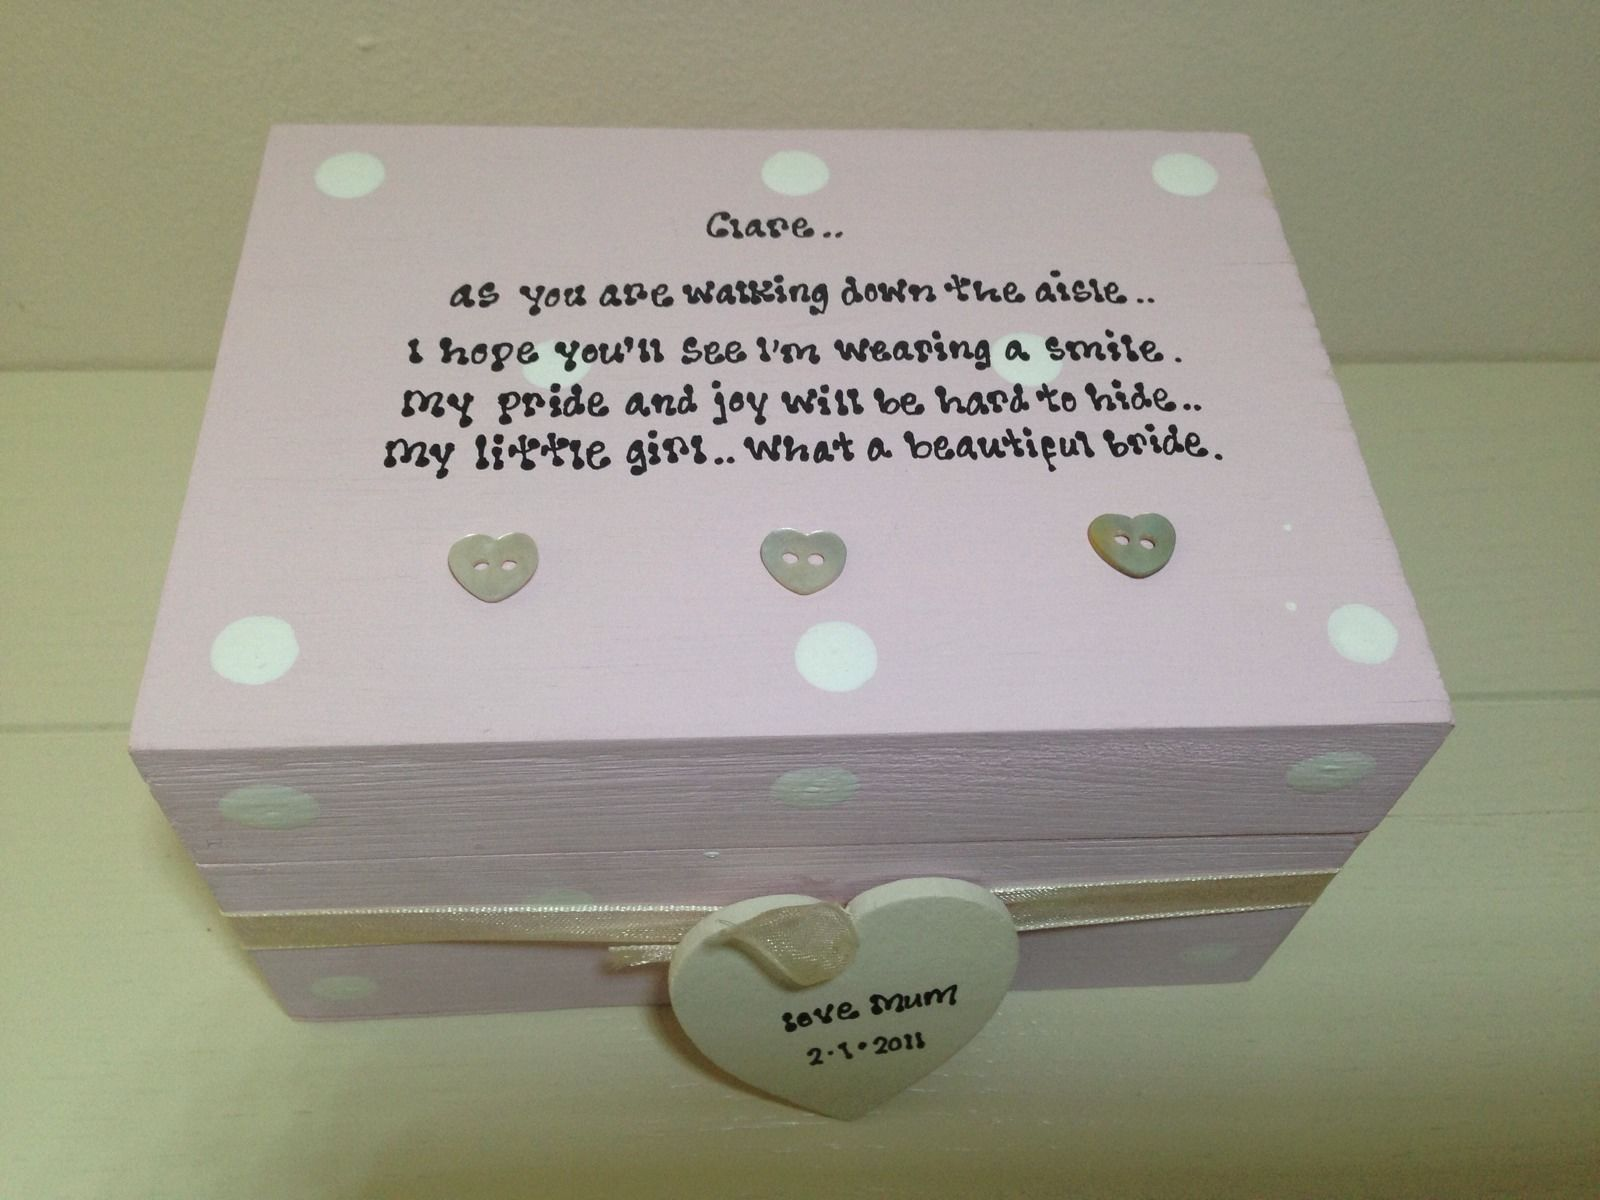 Shabby Personalised Chic Gift Box For Daughter Who Is The Bride On Wedding Day